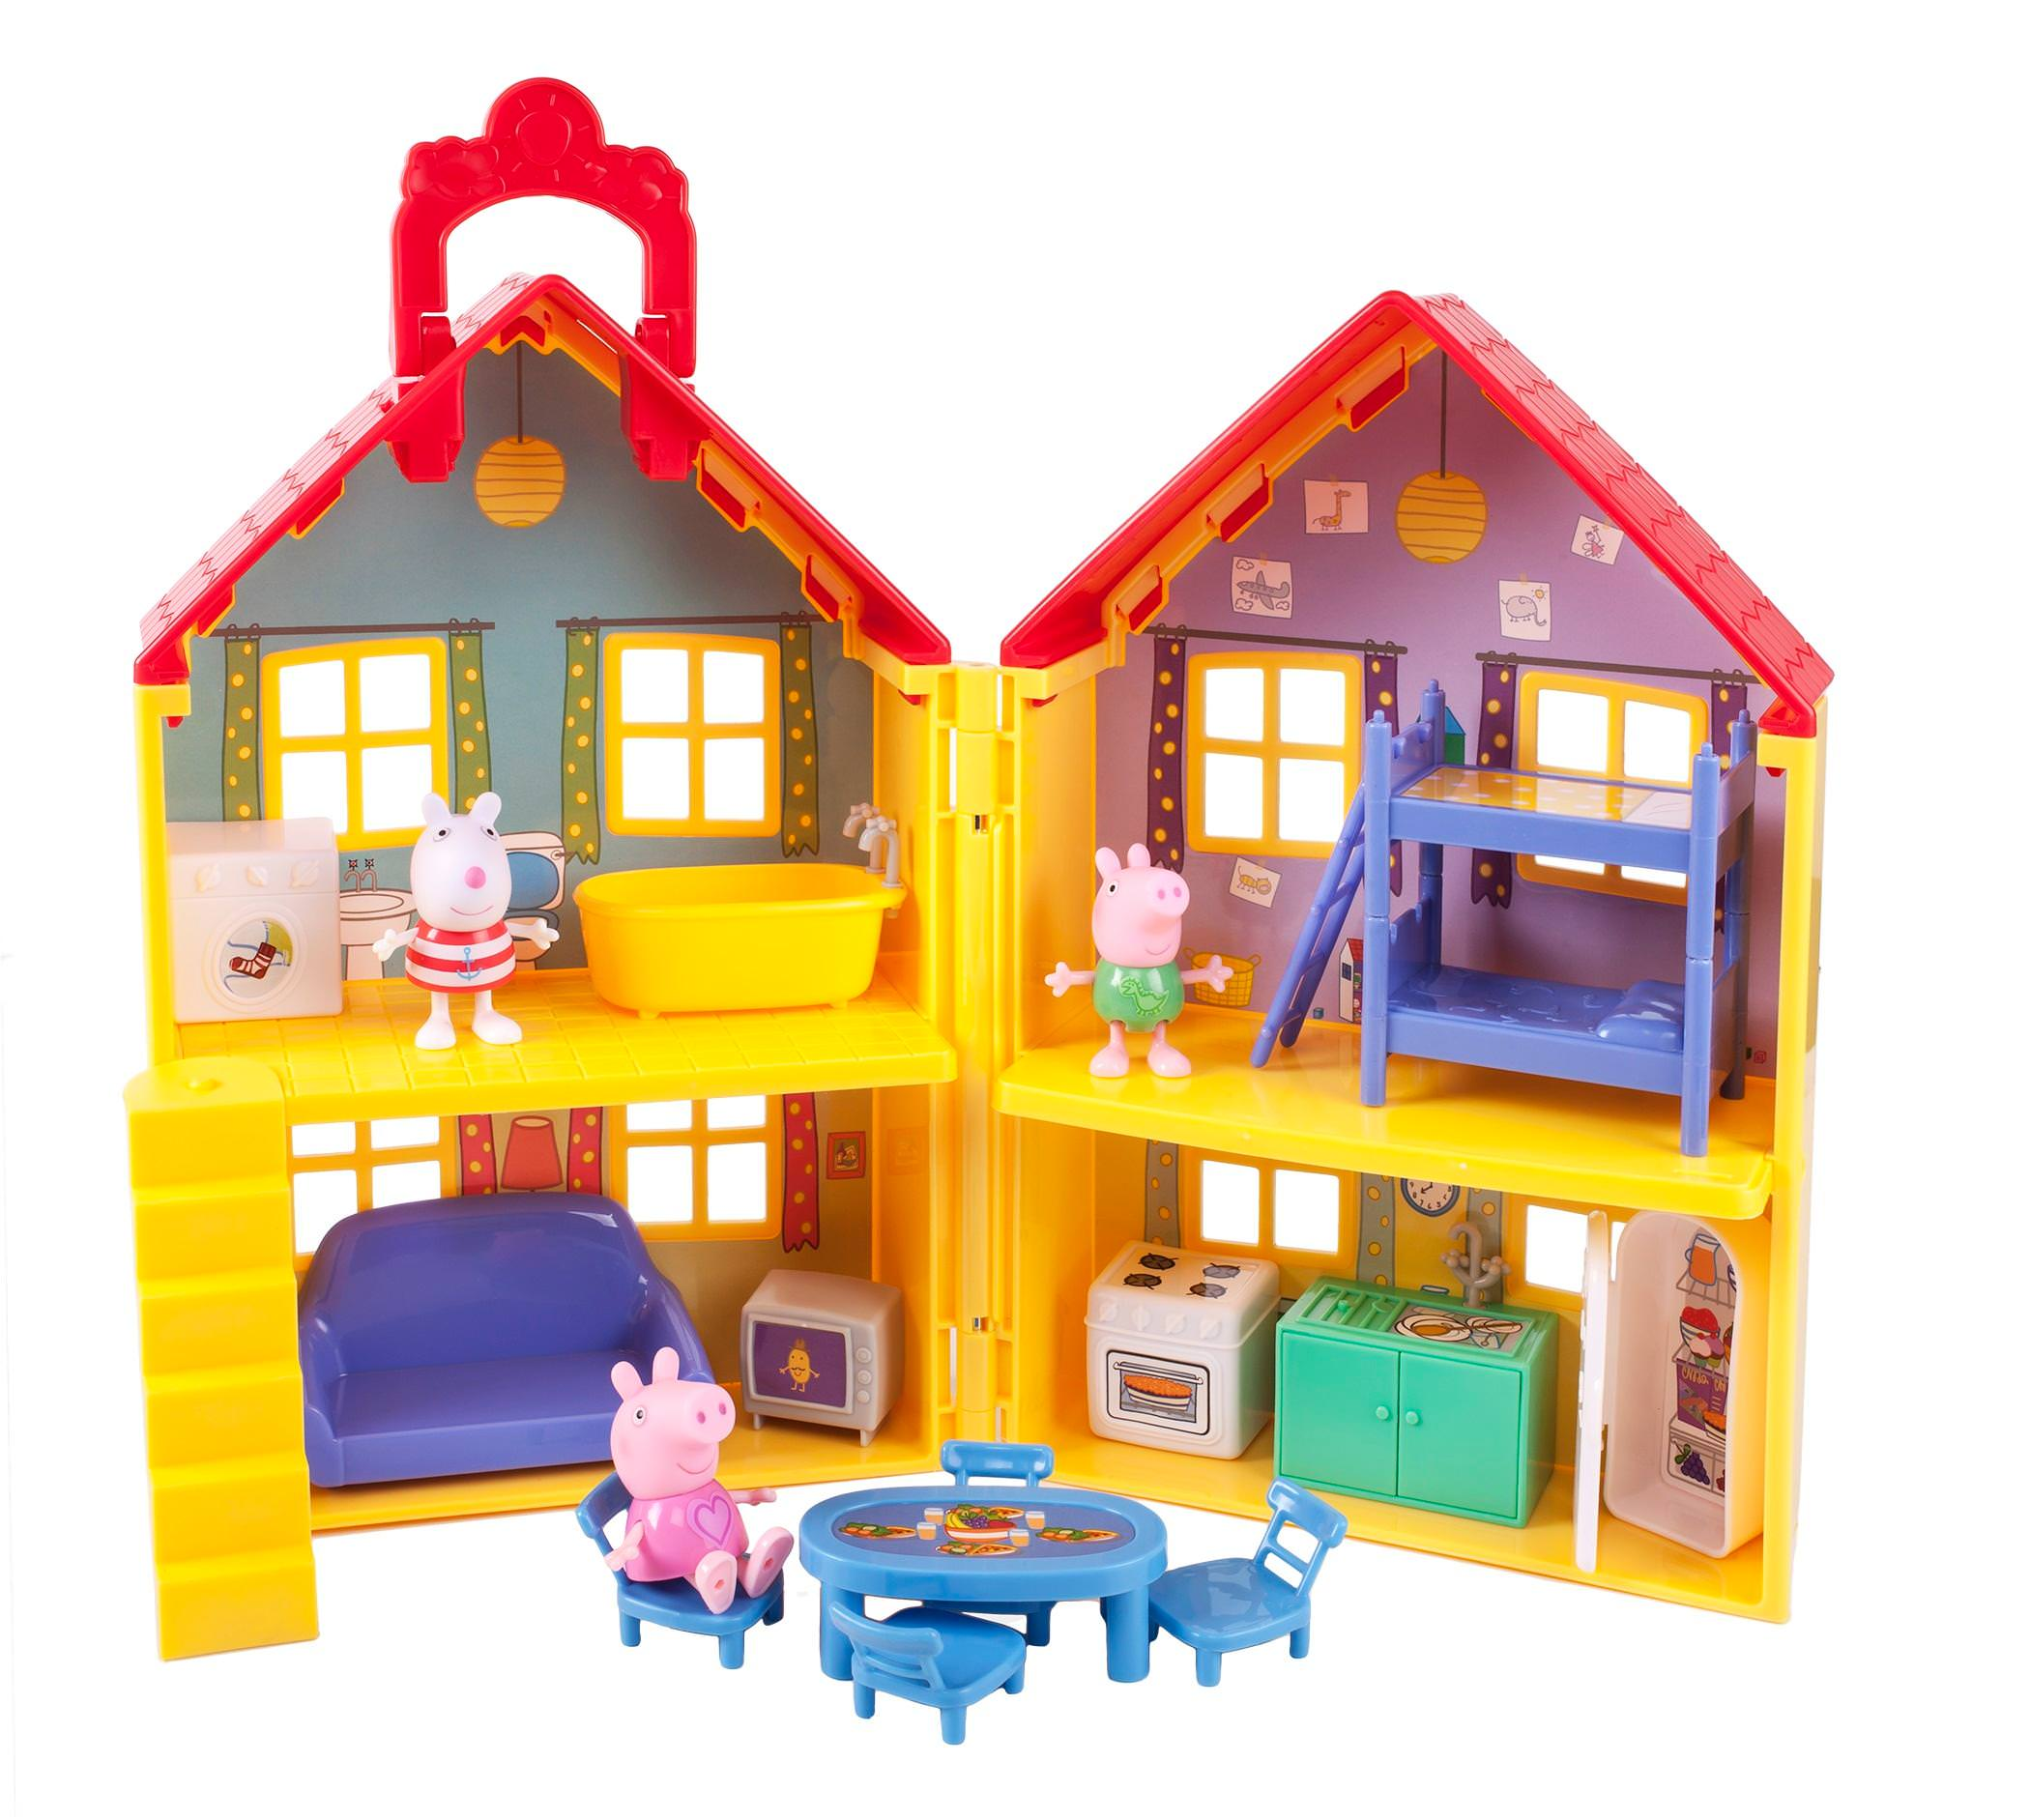 Peppa Pig's Deluxe House by Peppa Pig